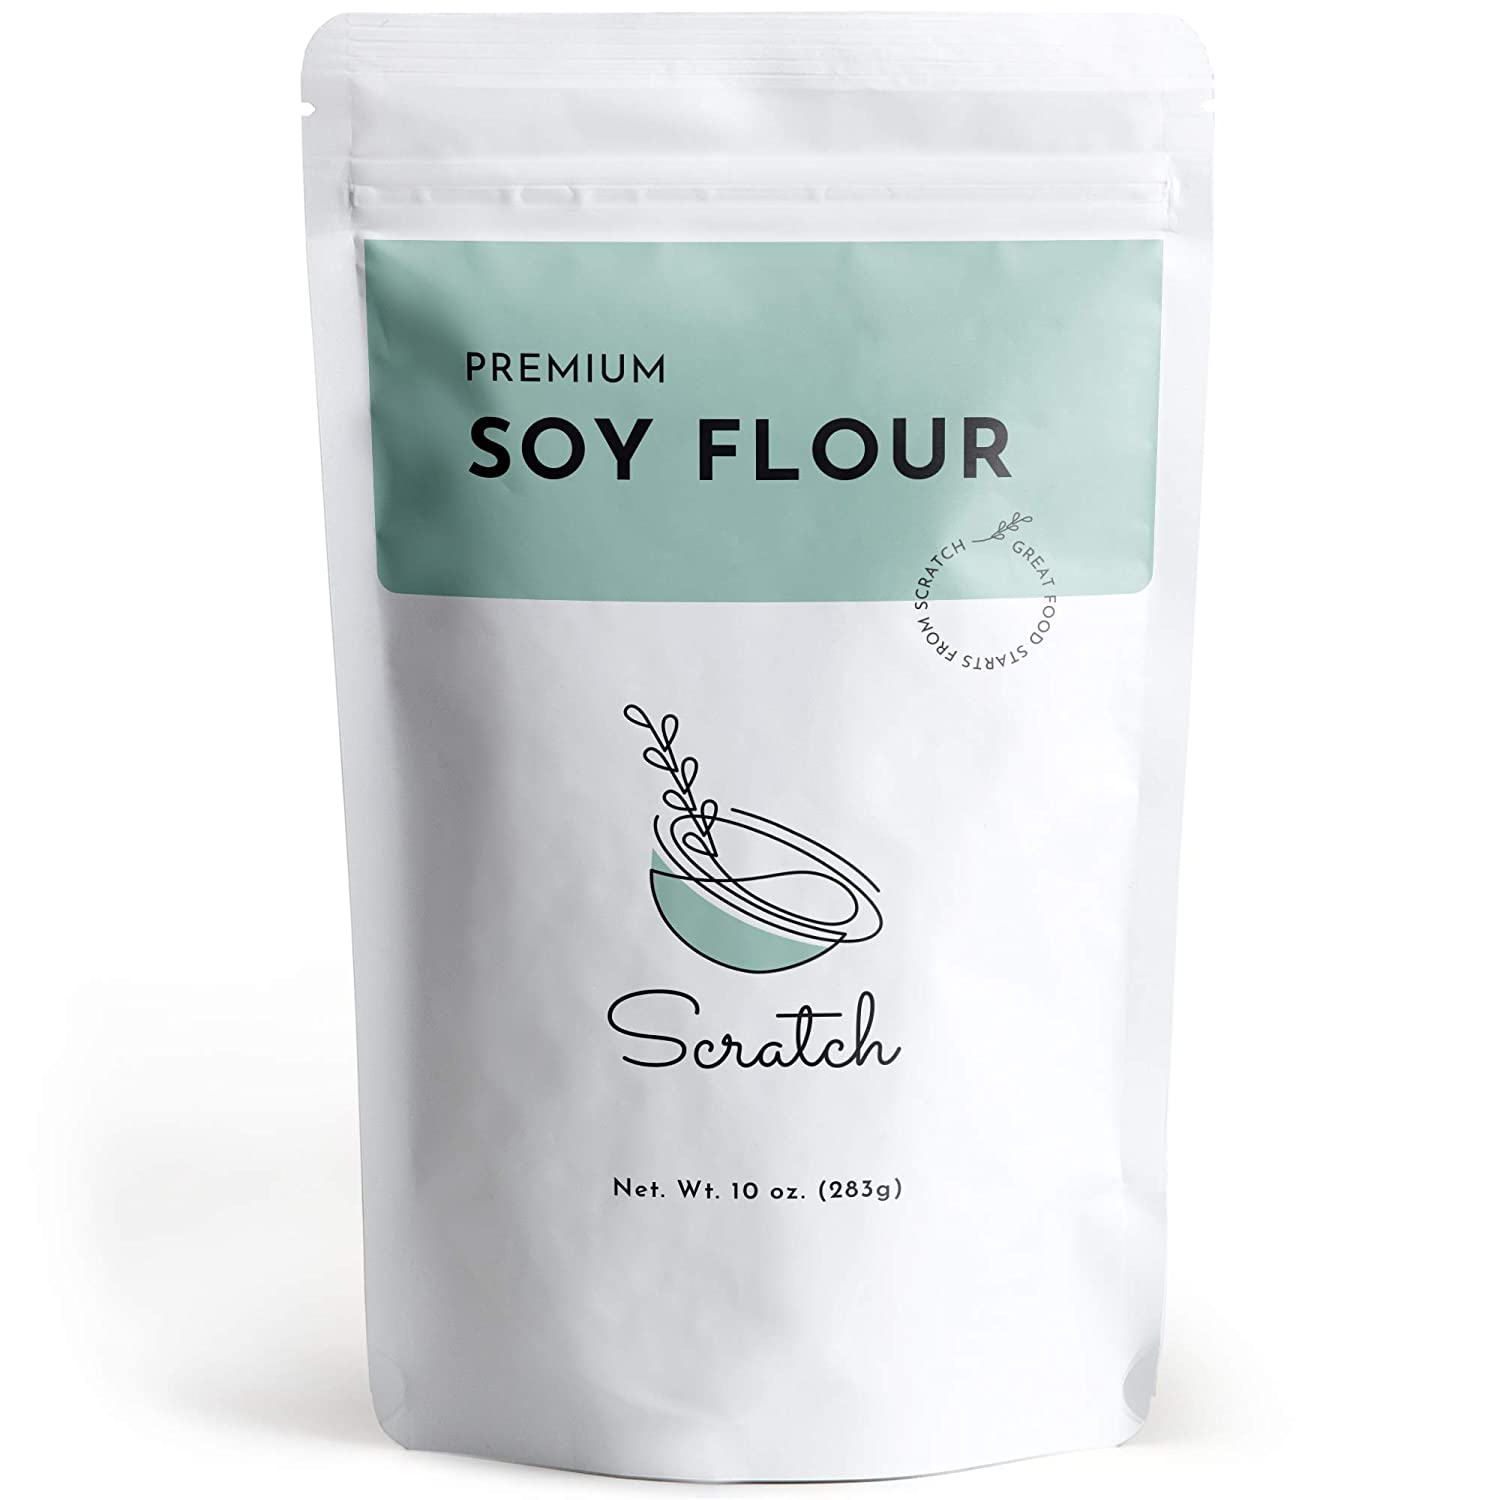 Scratch Premium Defatted Soybean Flour - Gourmet Baking Ingredients - Contains Calcium, Iron, Potassium, Protein, & Dietary Fiber - Rich Nutty Flavor - Low in Fat - Great Wheat Substitute (10oz)